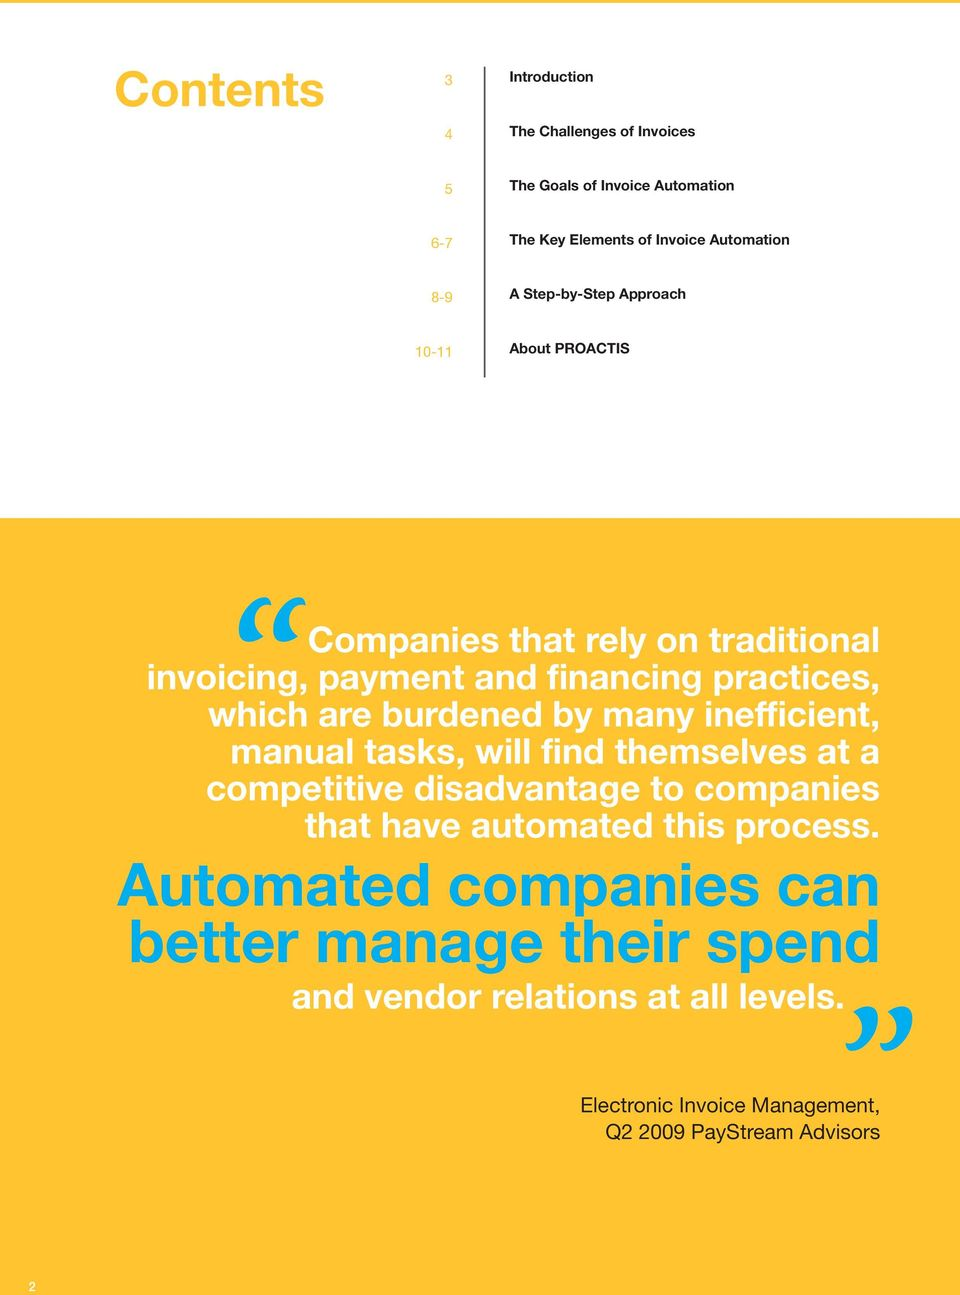 burdened by many inefficient, manual tasks, will find themselves at a competitive disadvantage to companies that have automated this